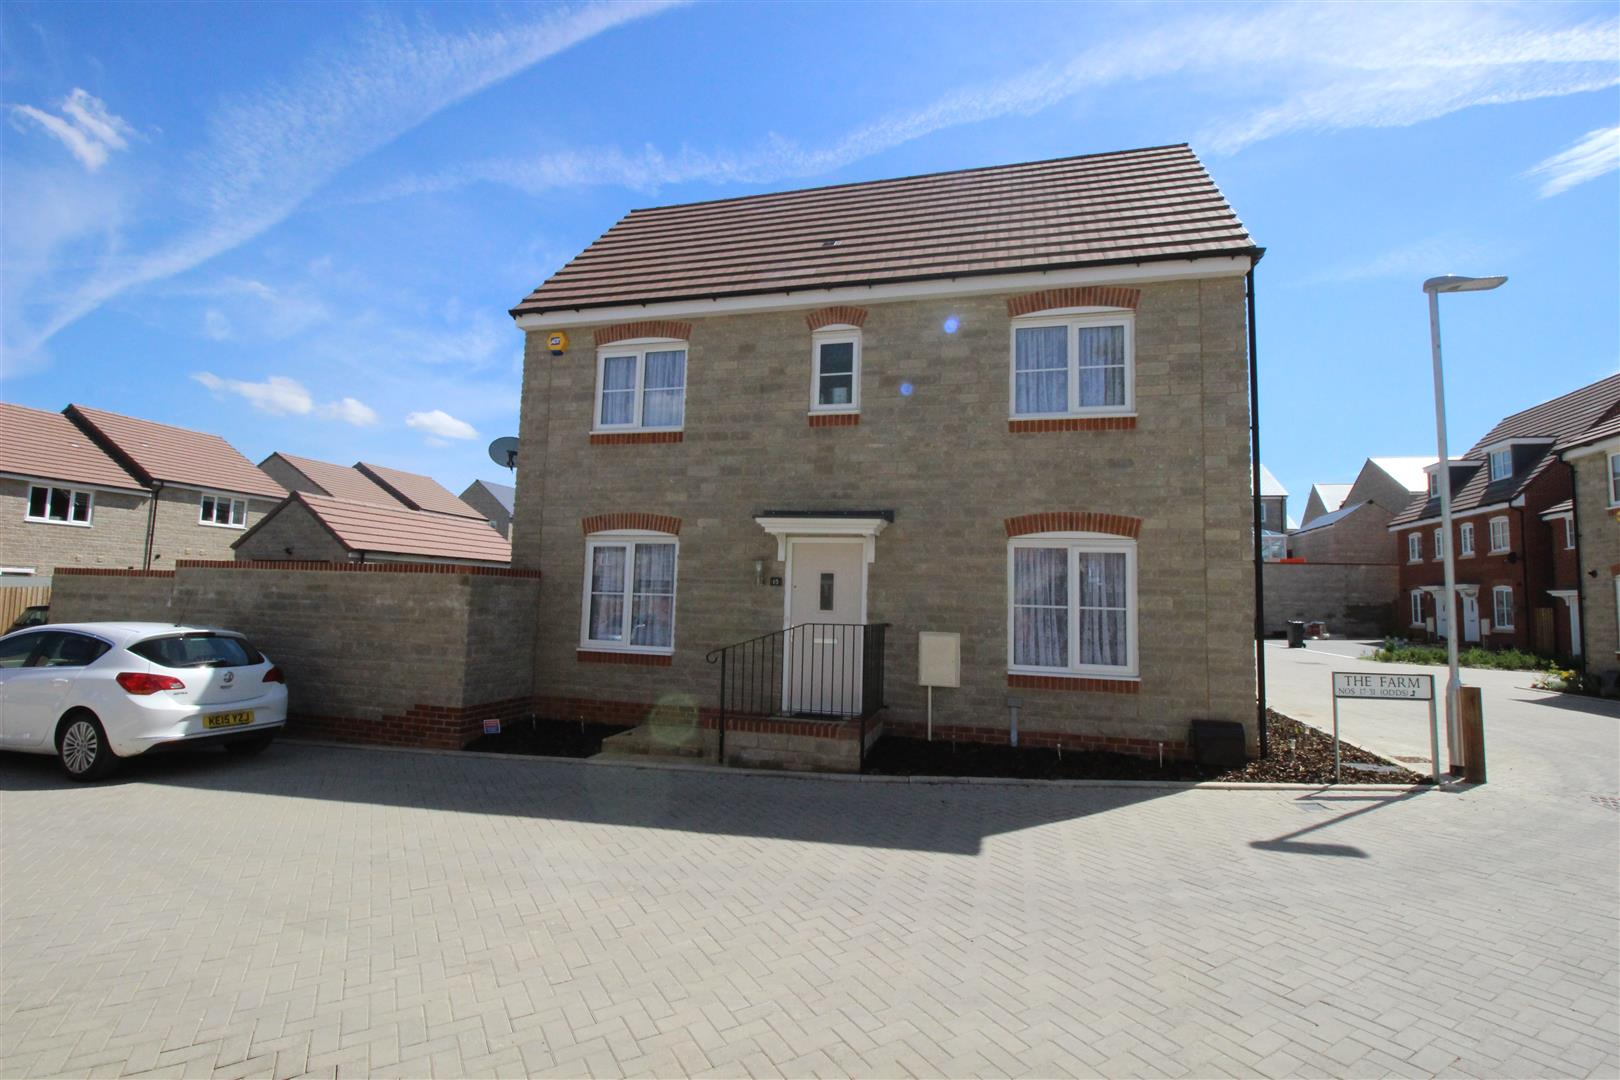 3 Bedrooms Property for sale in The Farm, Purton